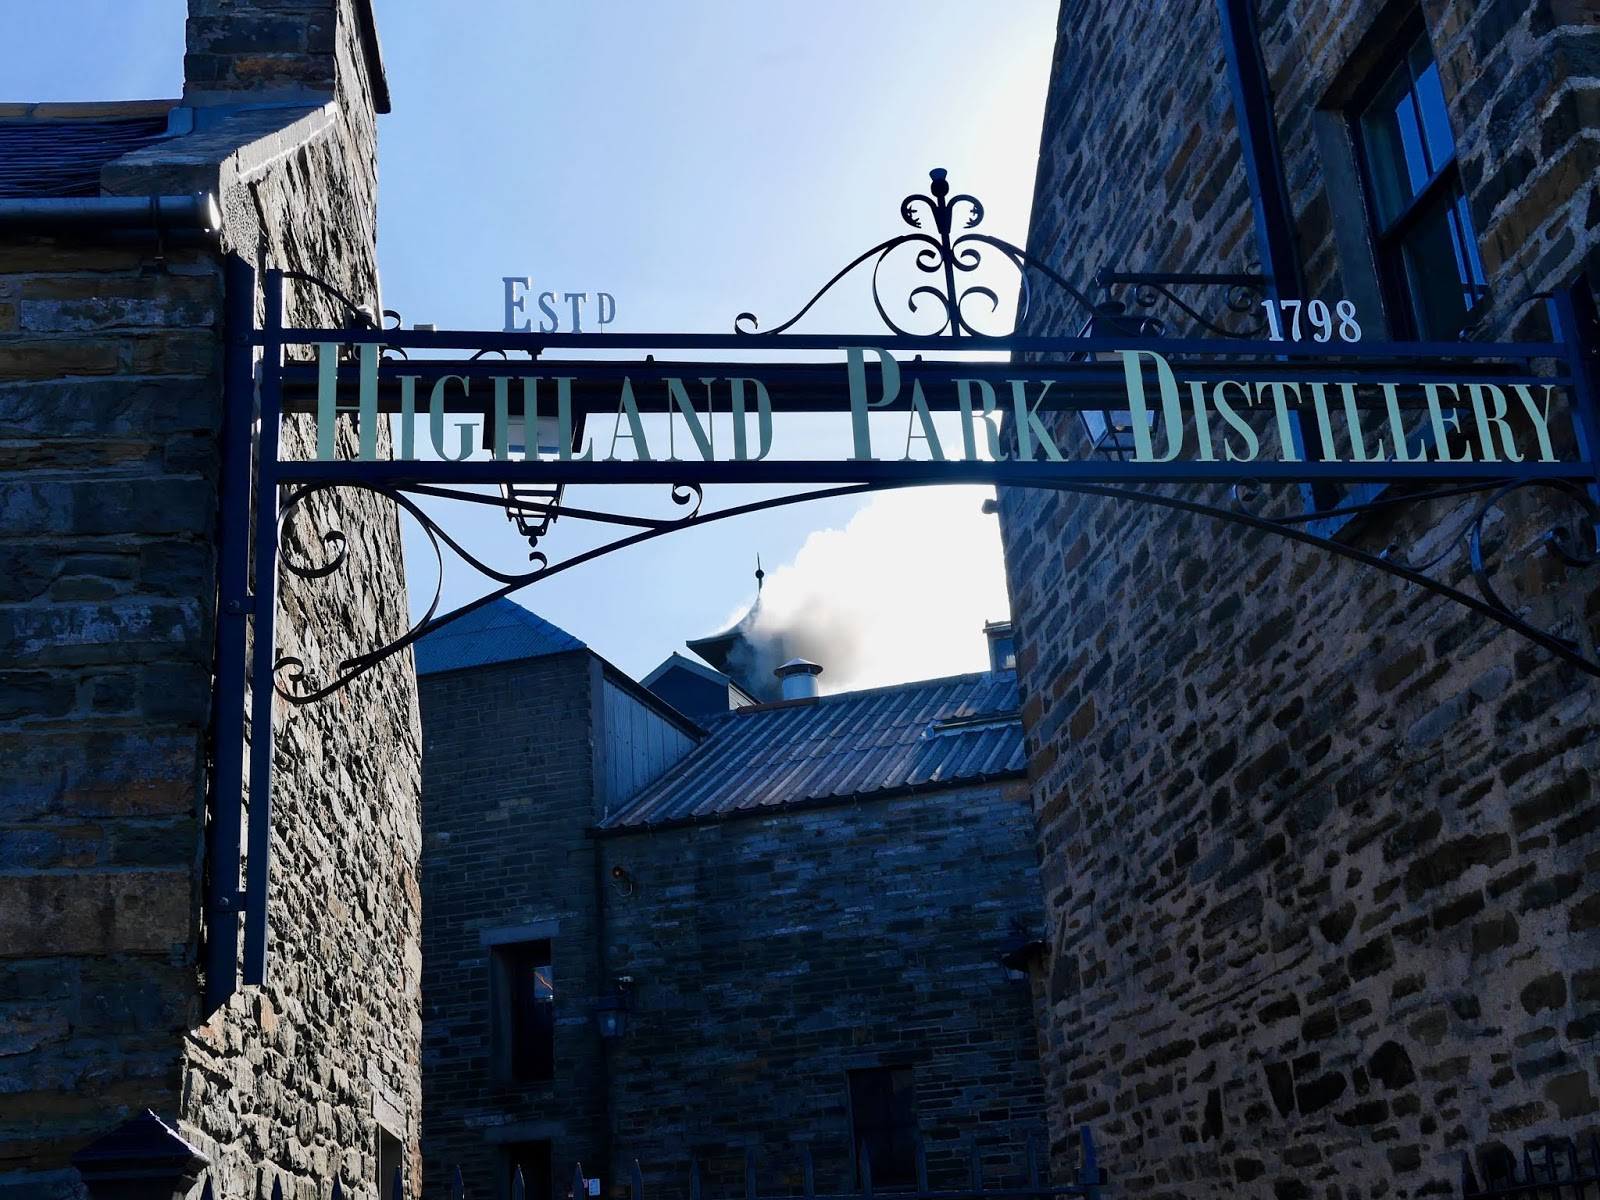 Highland PArk distillery tour and entrance, A trip to Orkney by www.CalMcTravels.com, Orkney, Whisky, Beer, Gin